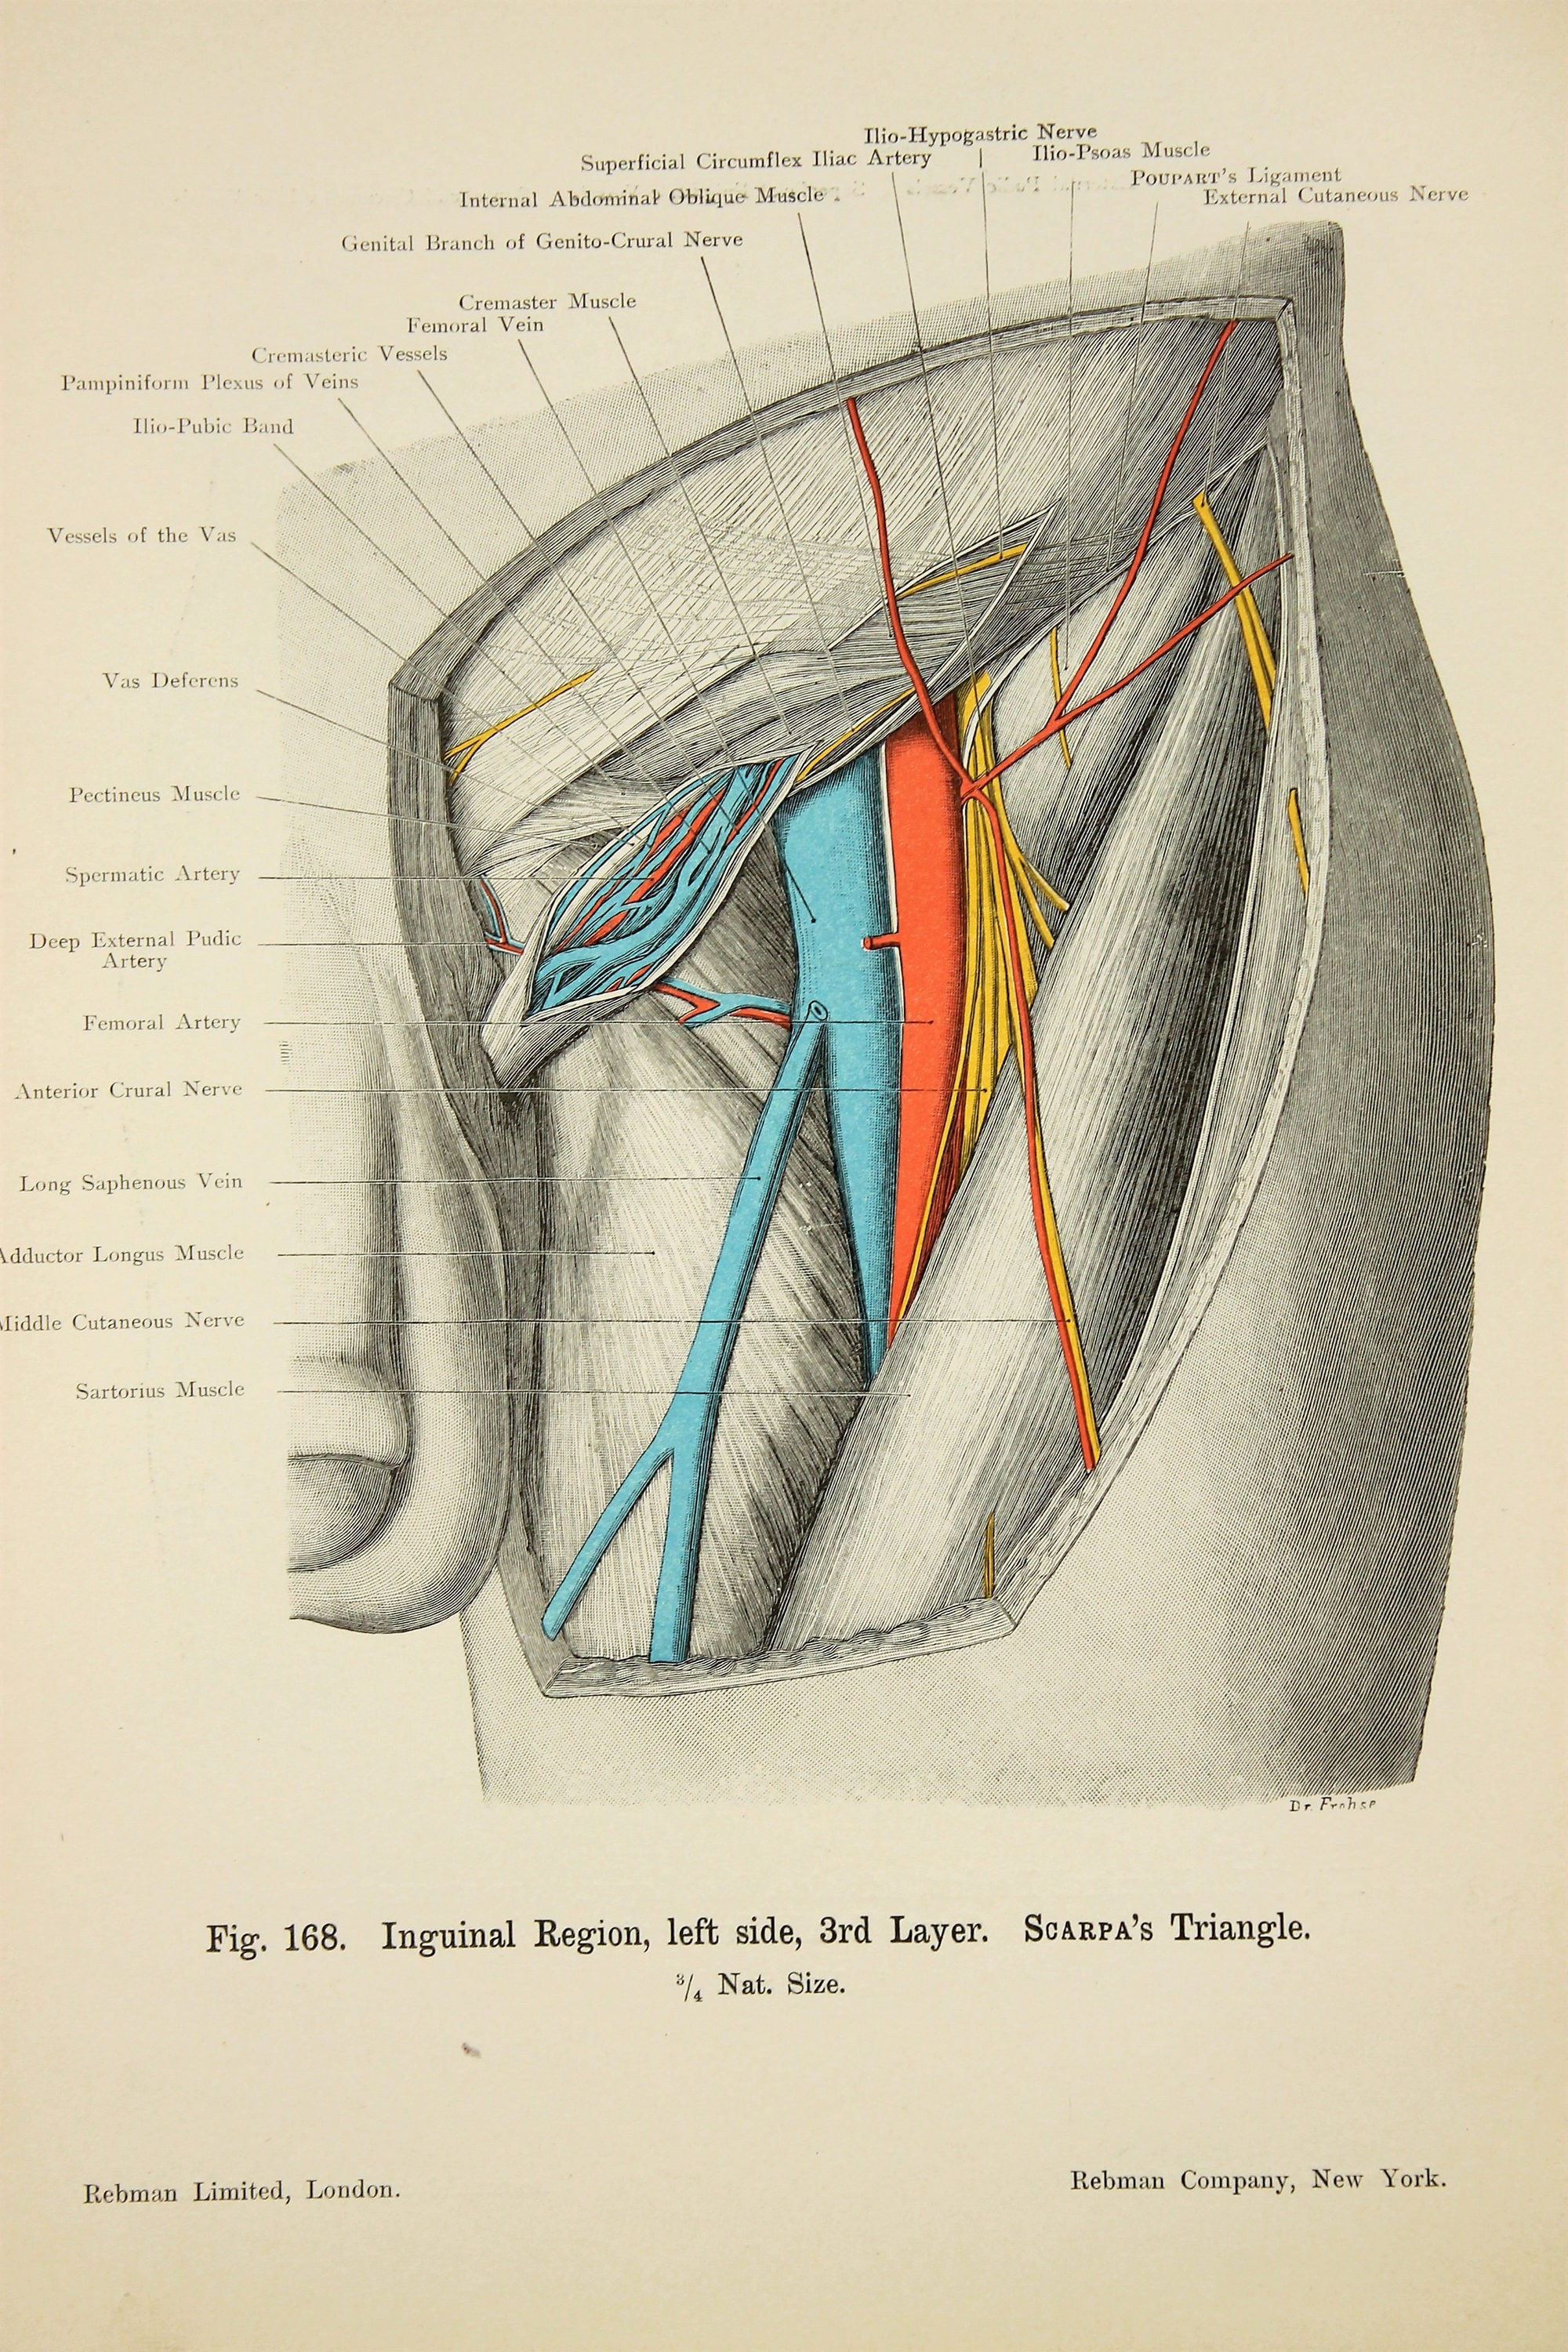 Thigh Muscles Arteries Veins Nerves c.1900 DOUBLE SIDED